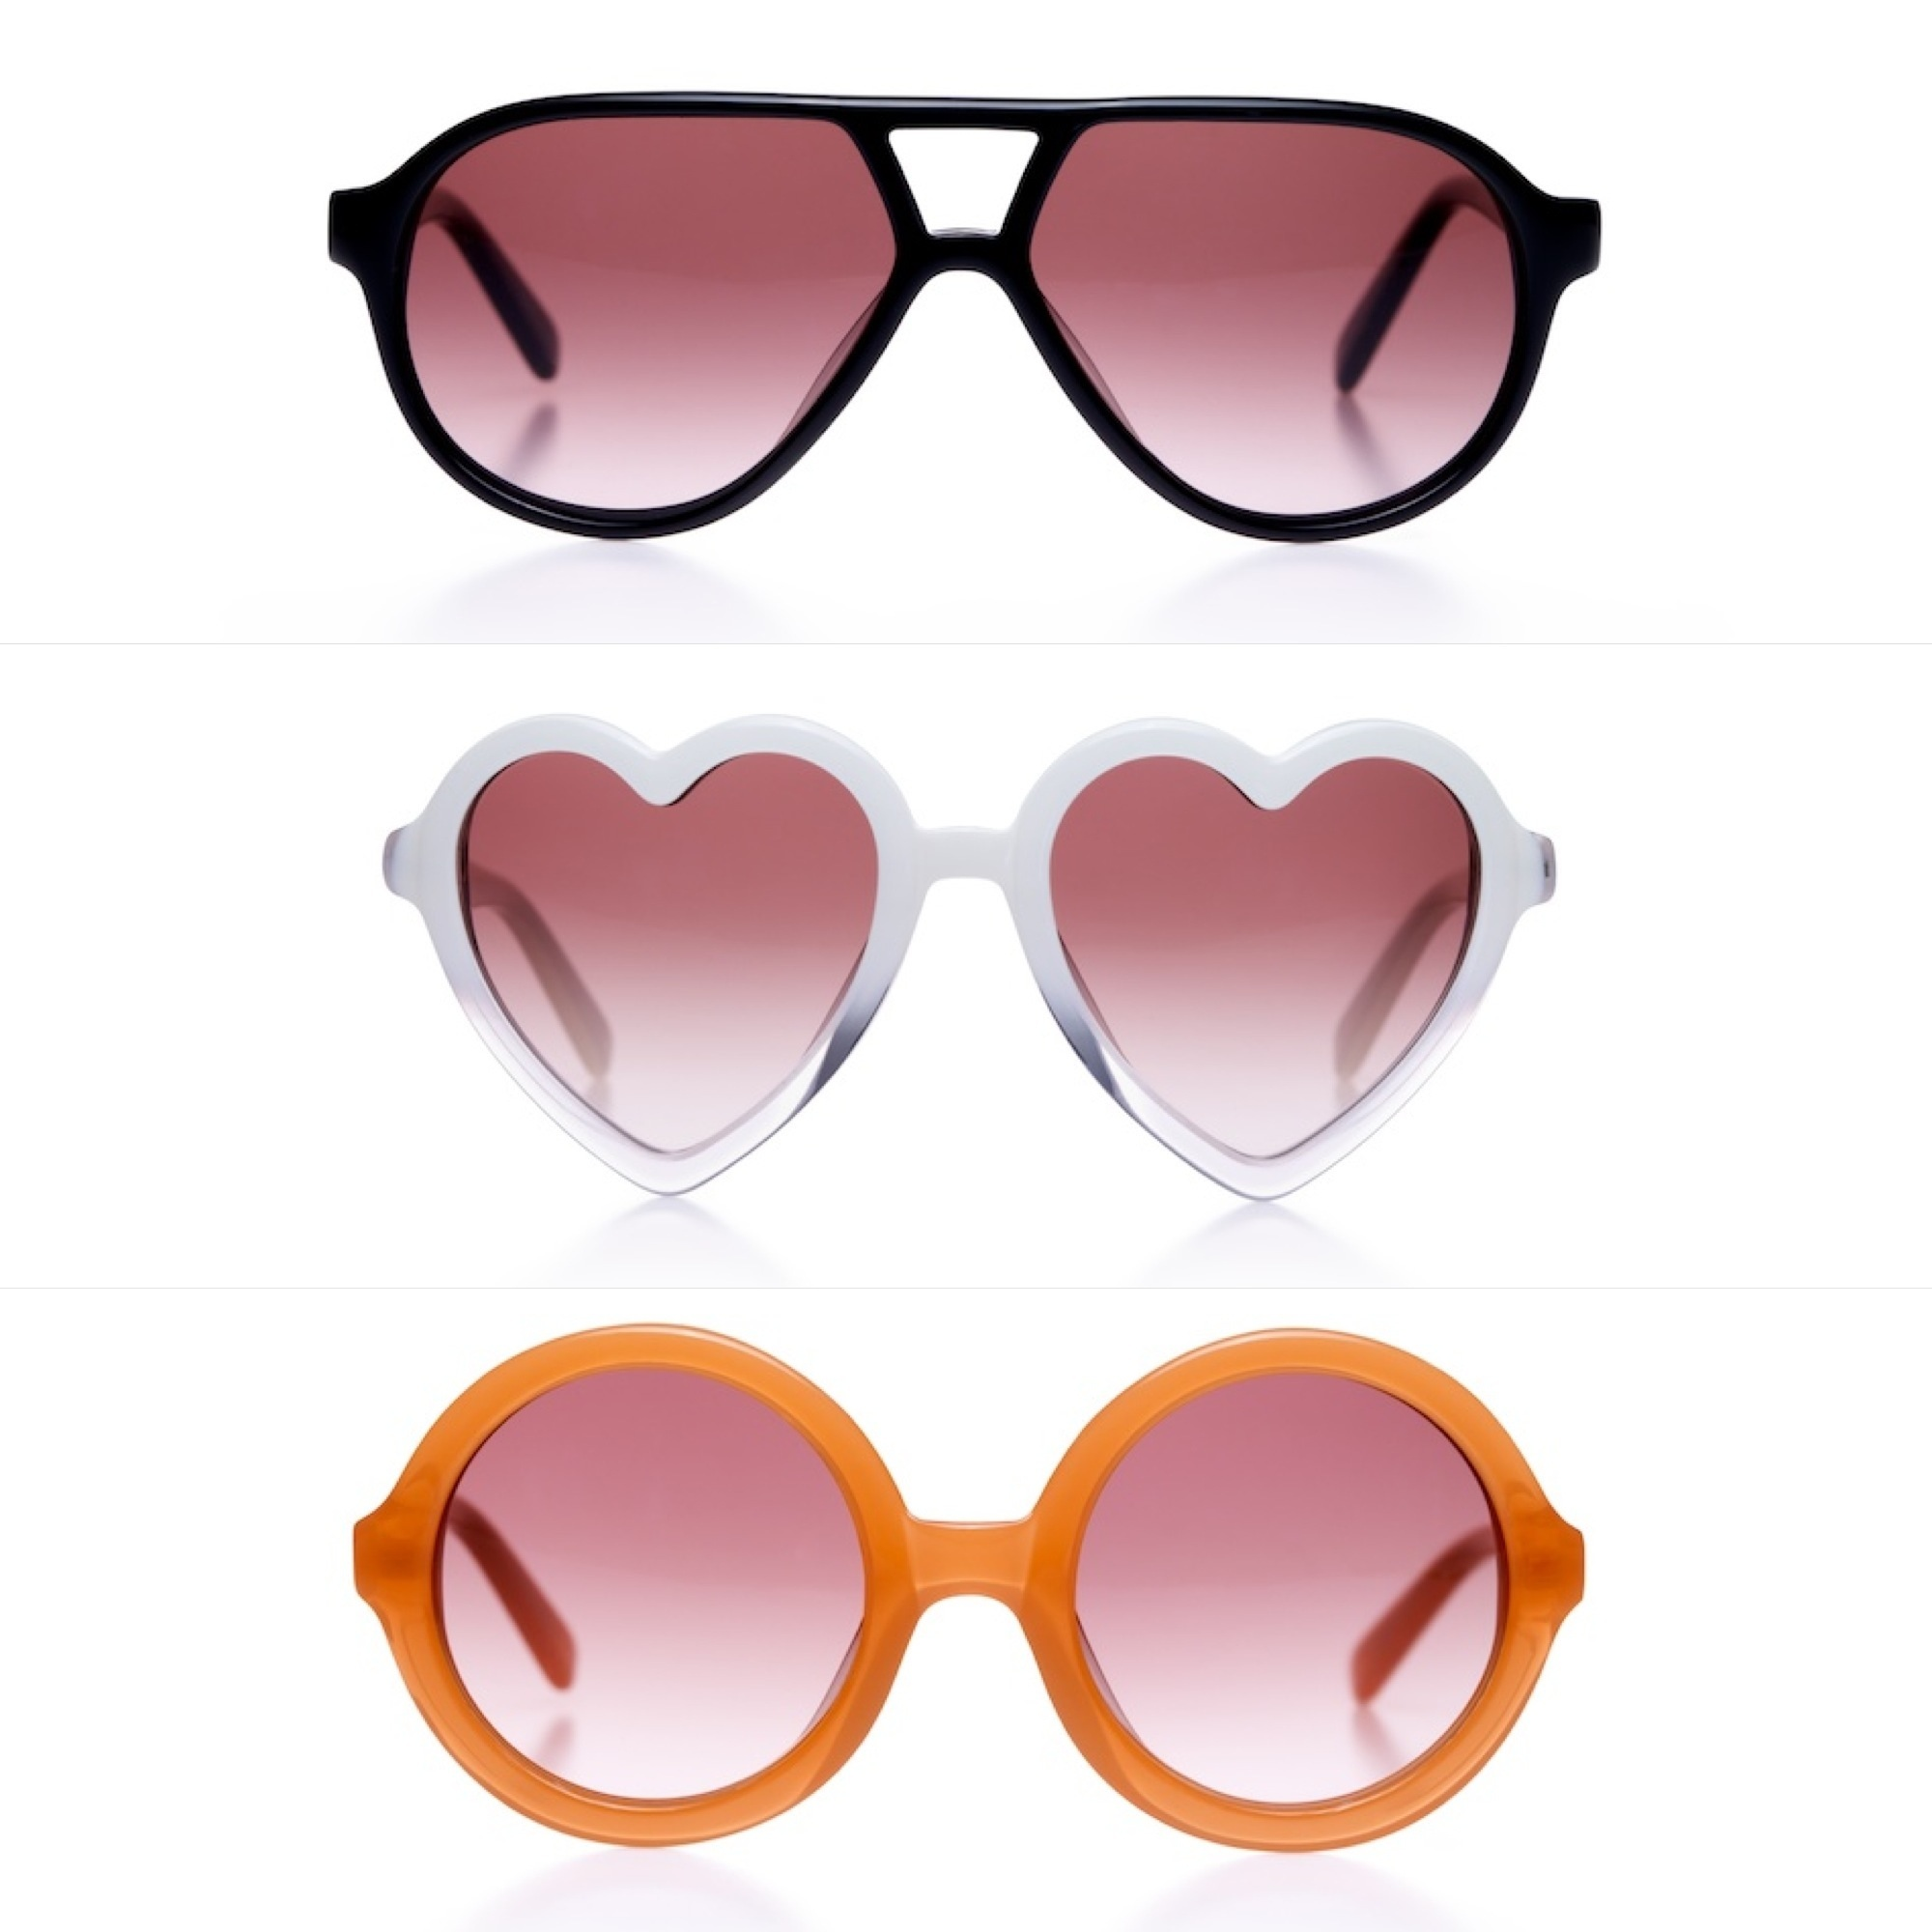 883c50ce3a1 Sons + Daughters Sunglasses for Littles